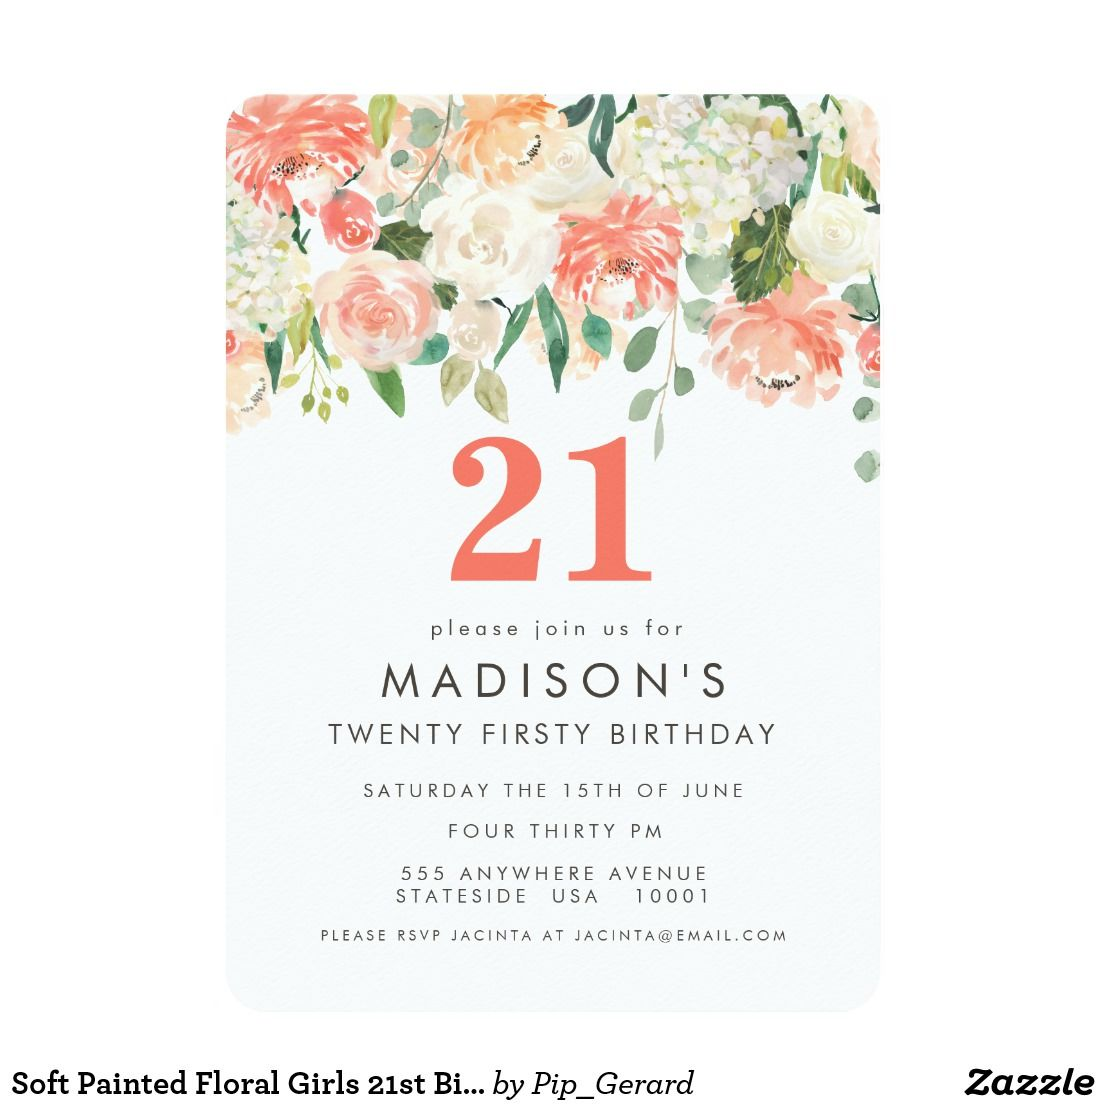 Soft Painted Floral Girls 21st Birthday Invite Zazzle